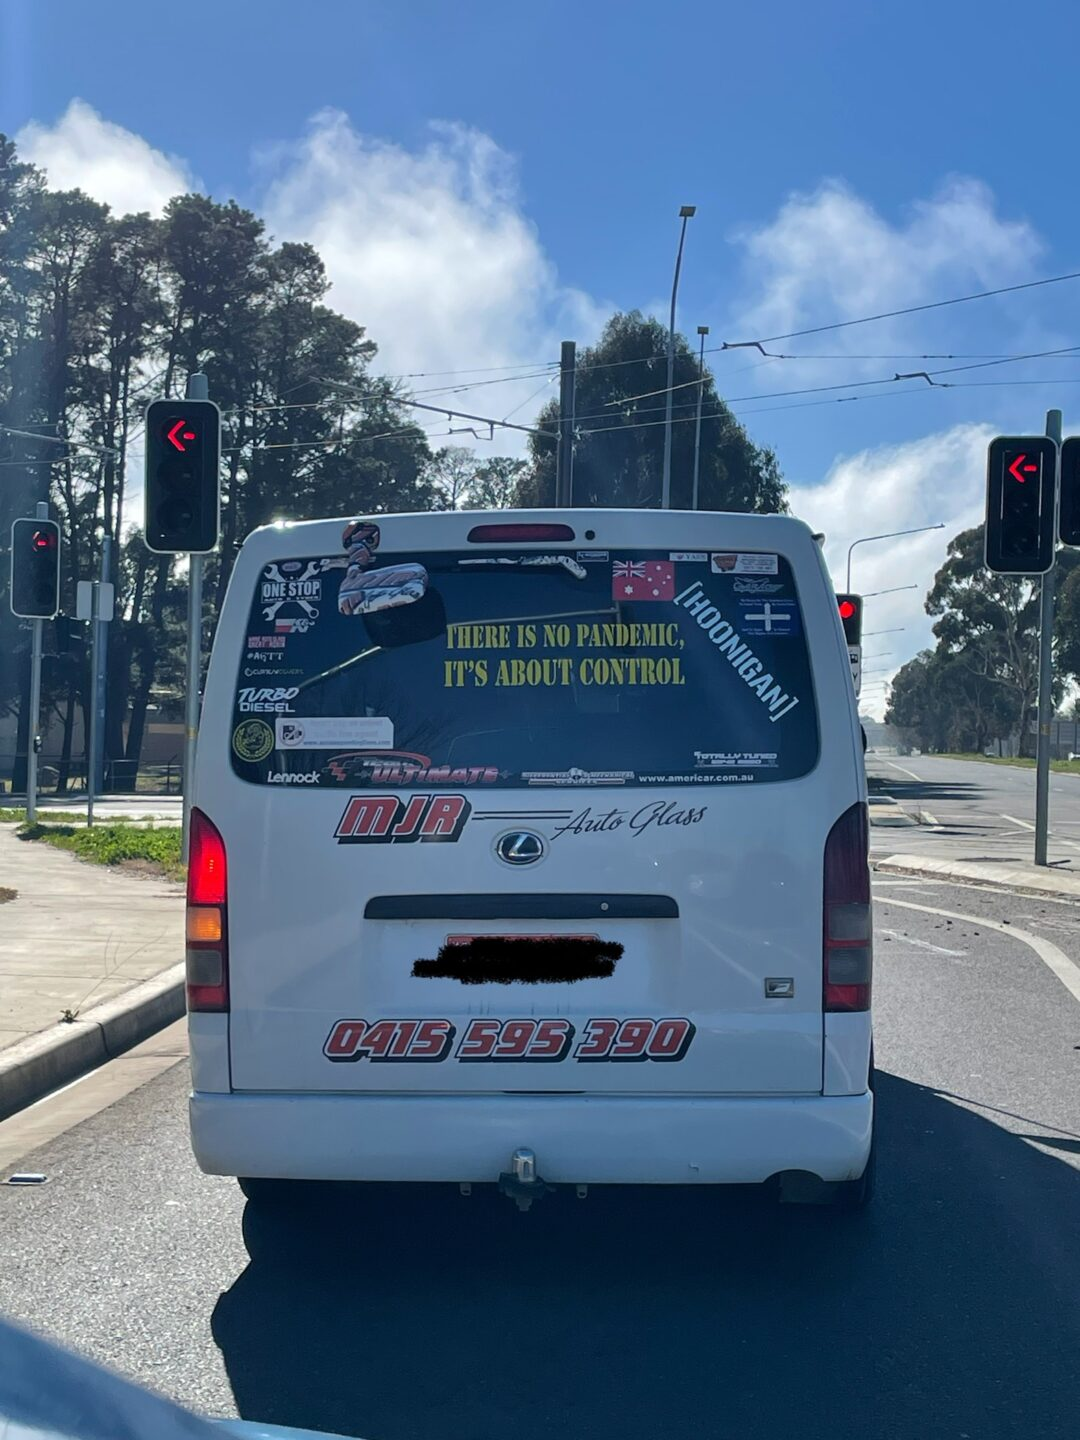 Rear of a white van stopped at lights in daytime. A vinyl sticker on the back window reads THERE IS NO PANDEMIC IT'S ALL ABOUT CONTROL. The window has a lot of other stickers.